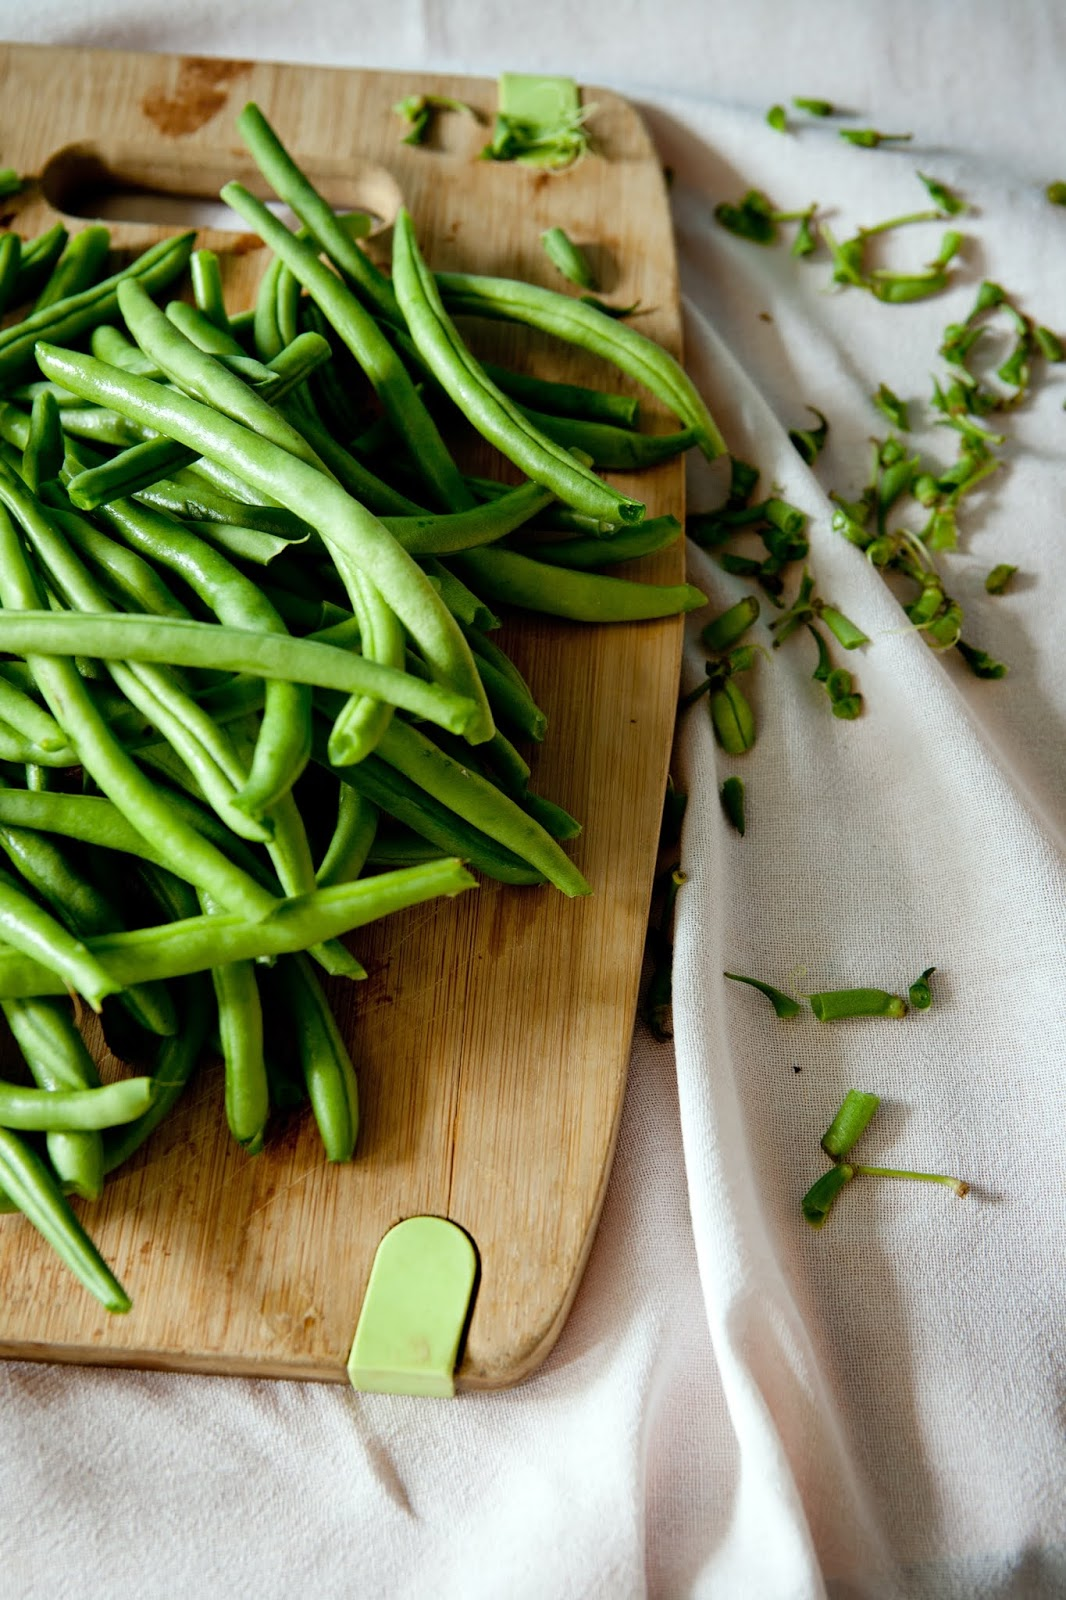 GREEN BEANS, Love green beans, vegetables, Healthy, recipes, clean eating, kind of, salad recipe, easy salad recipe, I can't cook,